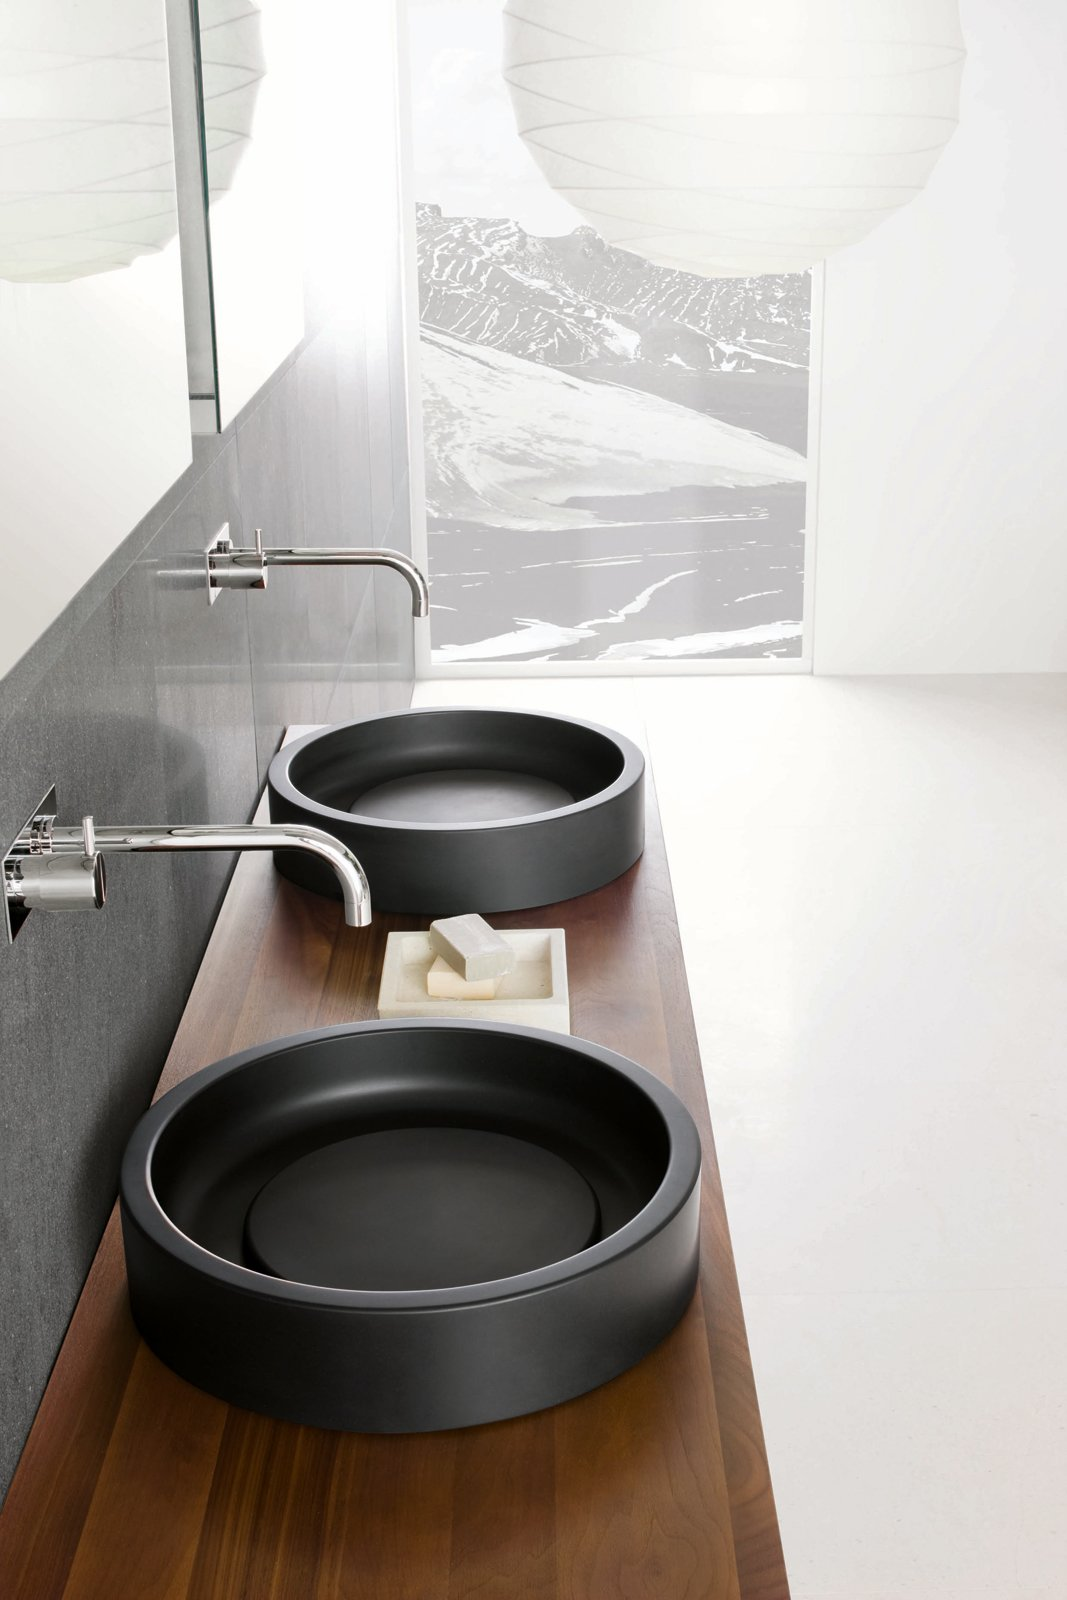 Detail shot of the Inkstone wash-basins in Black Rock stone. Tagged: Bath Room, Wood Counter, and Vessel Sink.  Best Photos from Inky Inspiration